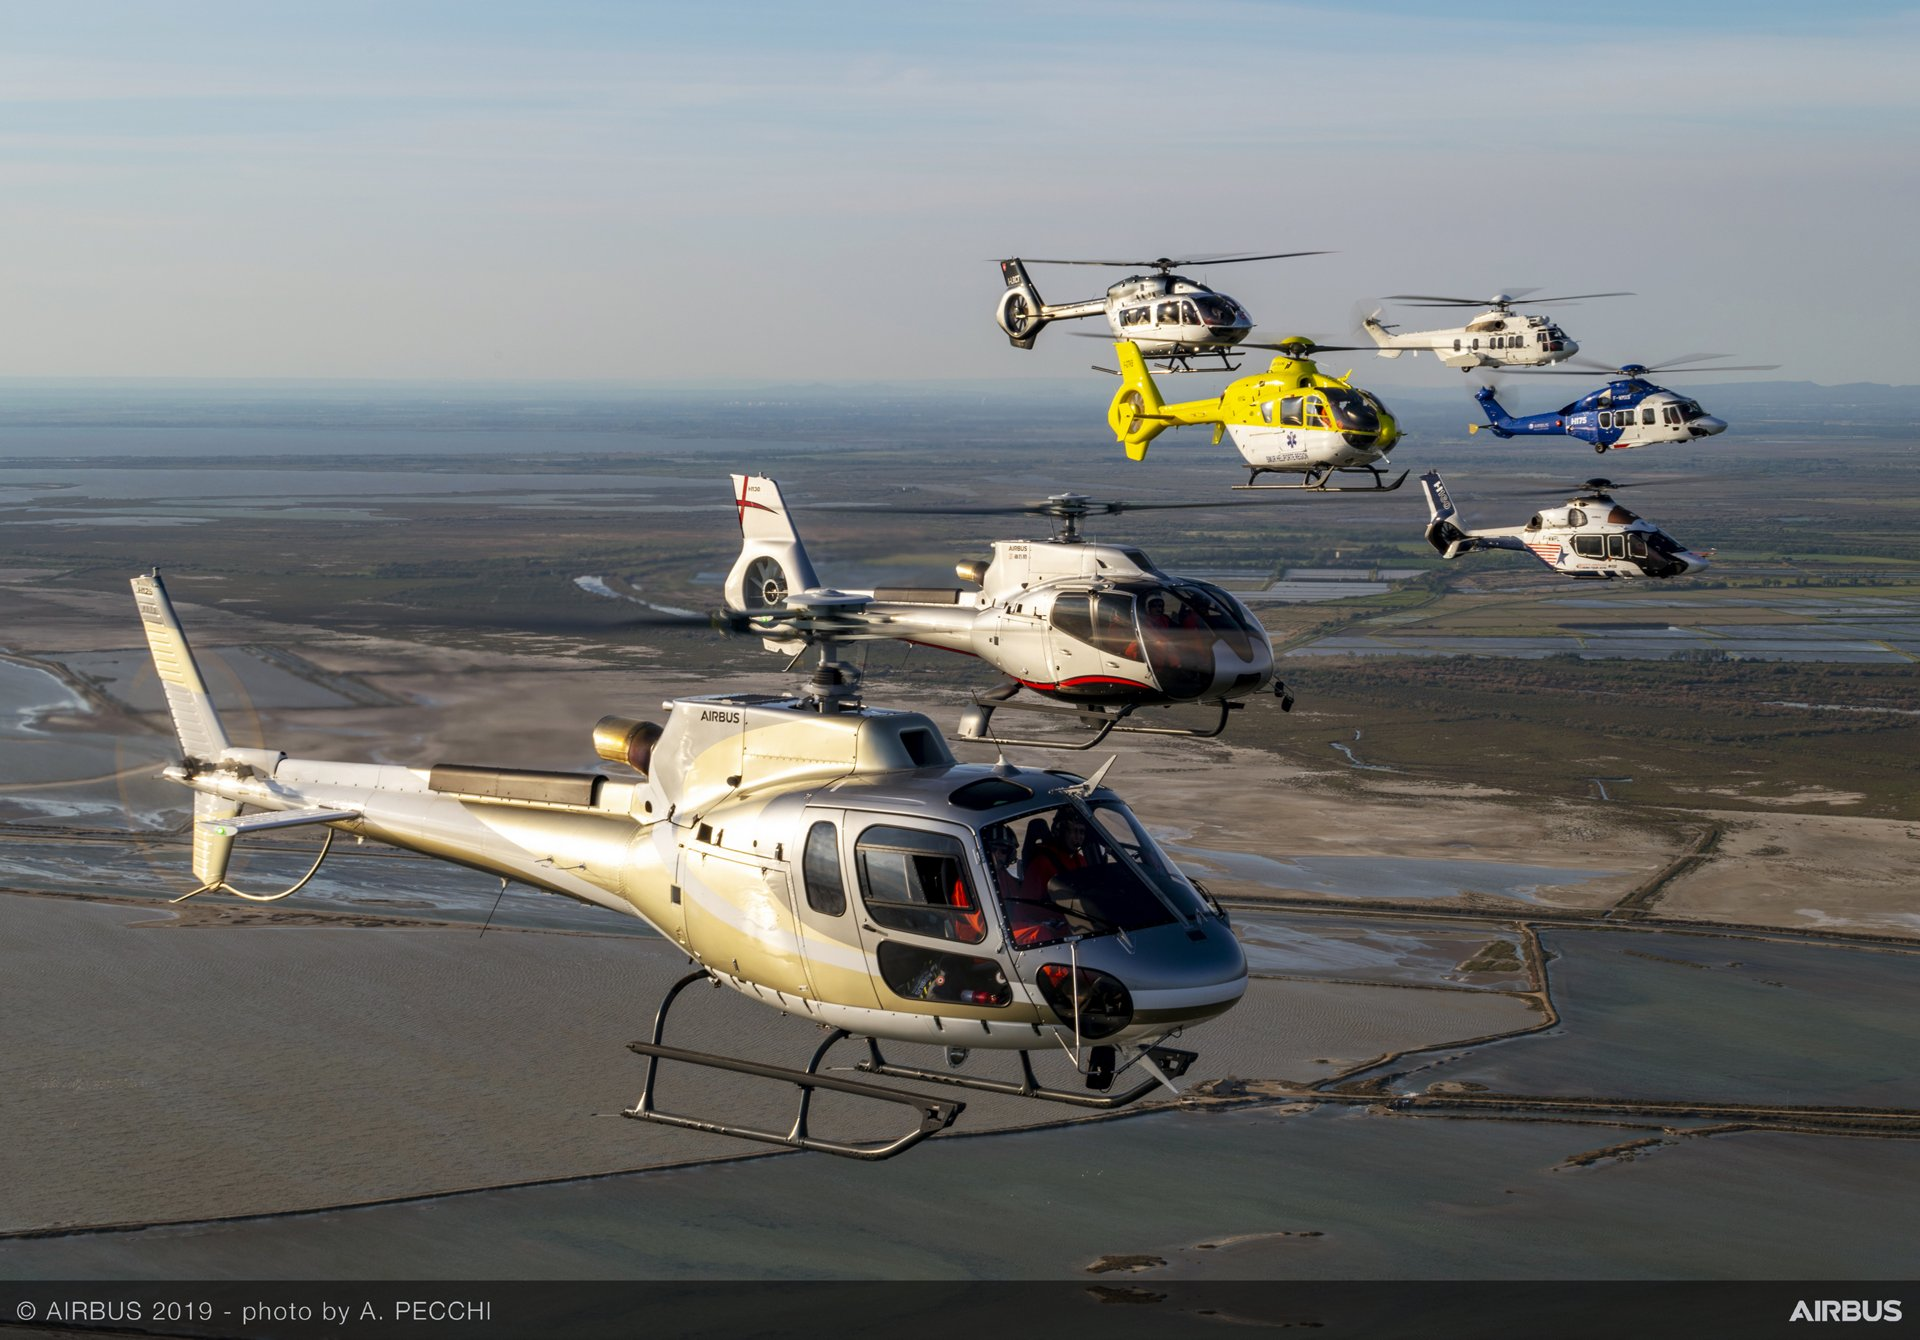 Airbus' product line of civil helicopters – from the single- and twin-engine light category to medium and eleven-ton-class rotorcraft – is shown in formation flight celebrating Airbus' 50th anniversary, composed of the H125, H130, H135, H145, H160, H175 and H225